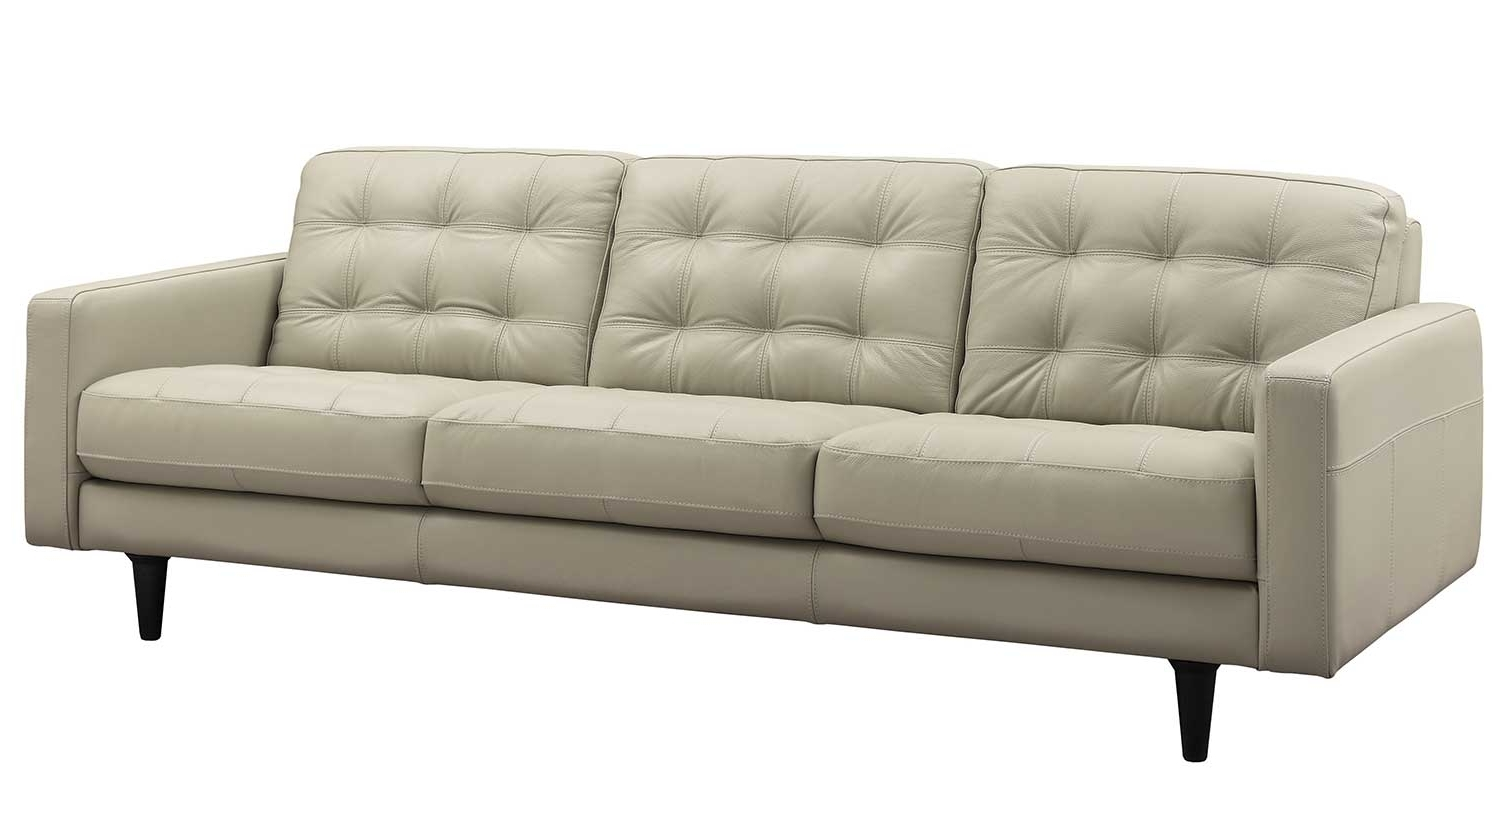 Circle Sofas Within Newest Circle Furniture – Fairfield Sofa (View 6 of 15)